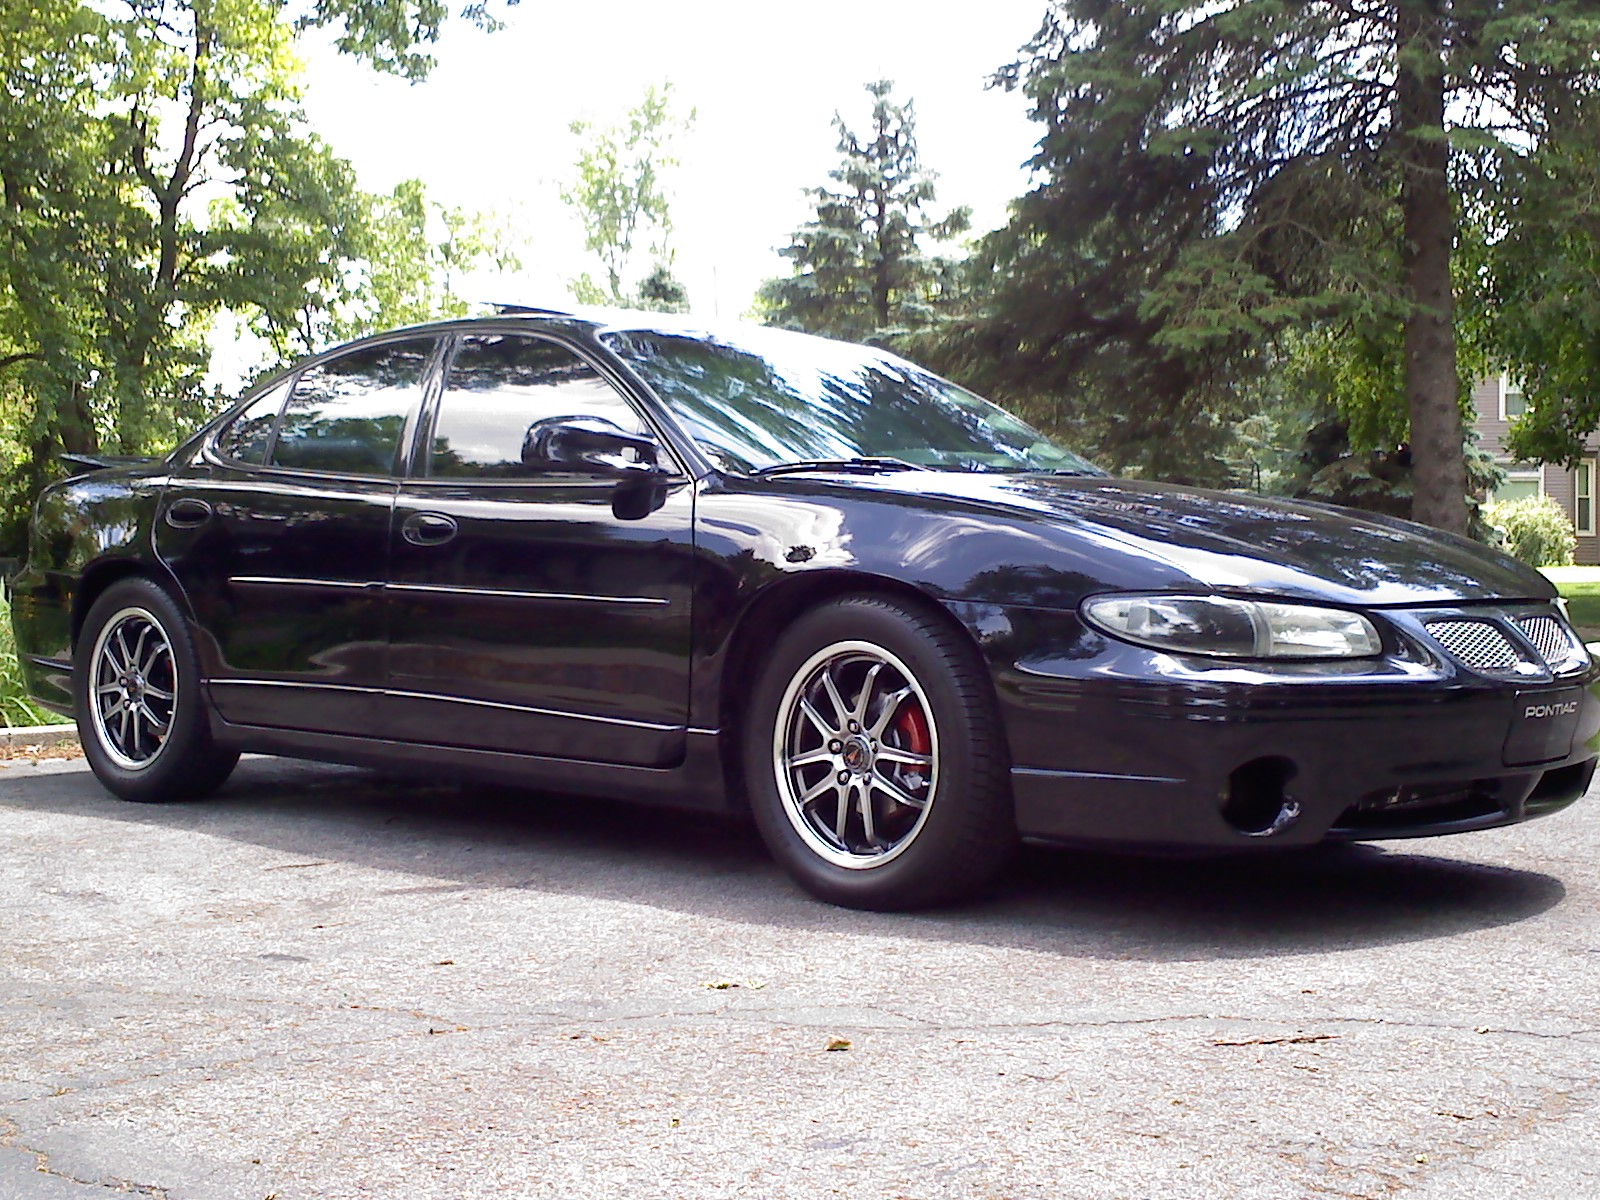 1999 Pontiac Grand Prix 4 Dr GTP Supercharged Sedan picture